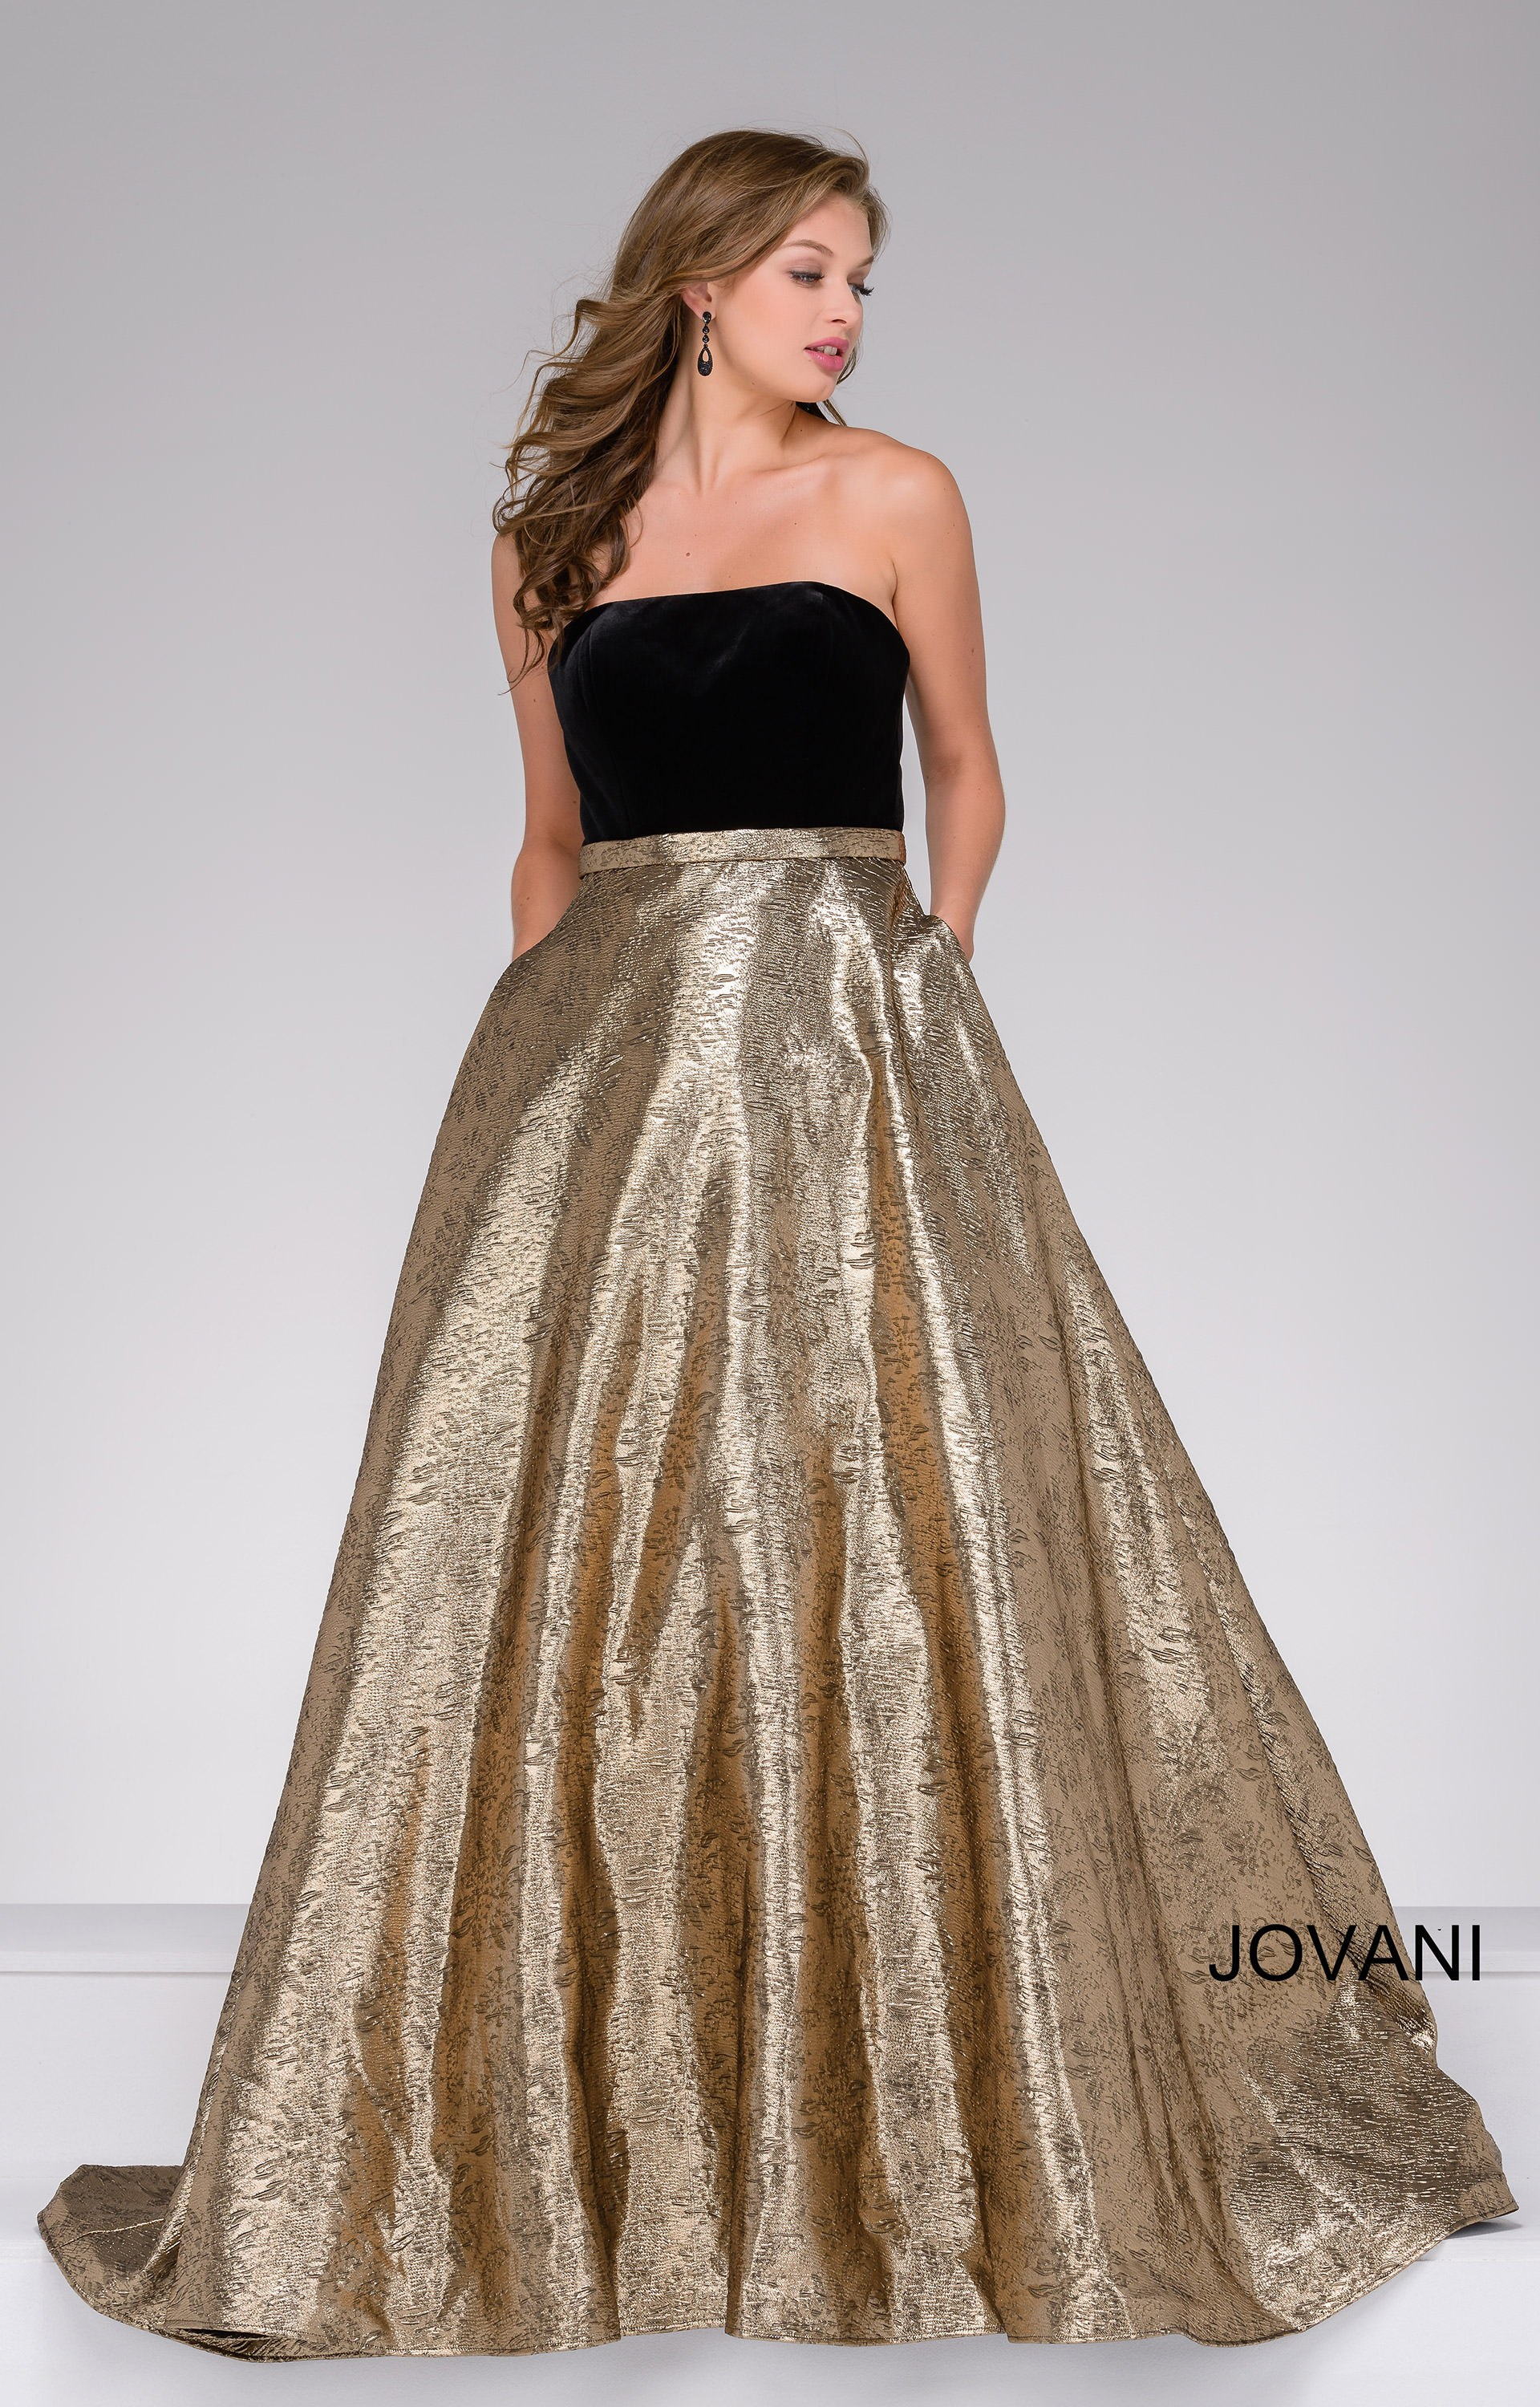 Jovani 47982 - Velvet Strapless top with a Metallic Skirt Ball Gown ...